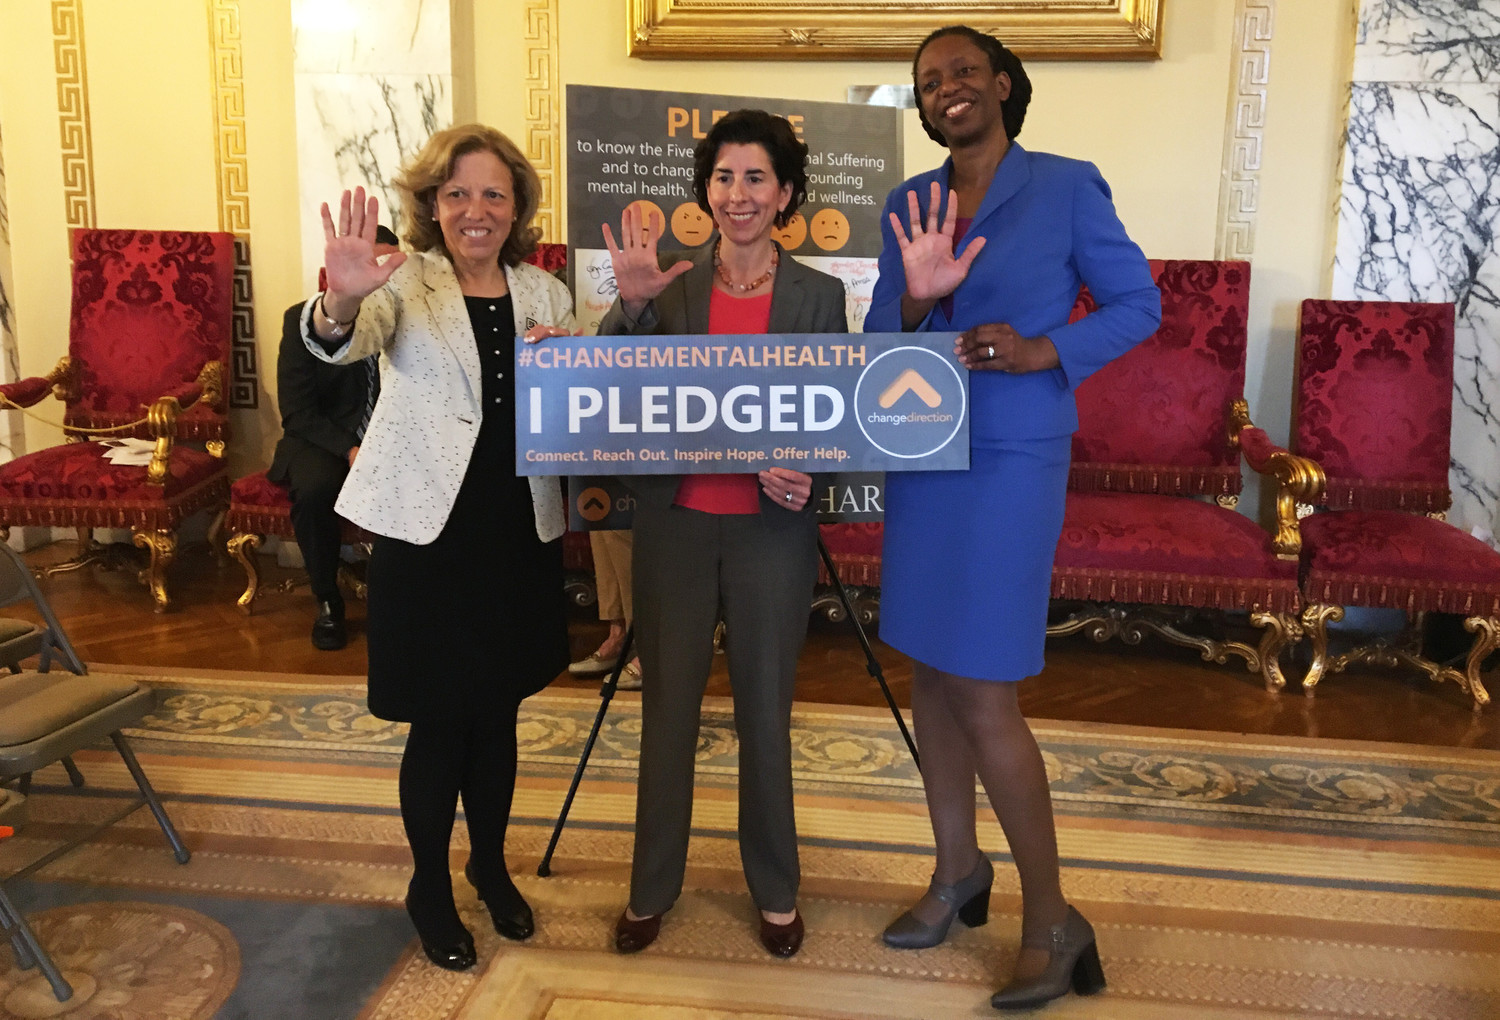 Promoting the campaign recognize the five signs of depression as part of mental health awareness month are Teresa Paiva Weed, executive director of the Hospital Association of Rhode Island, Gov. Gina Raimondo, and Dr. Nicole Alexander-Scott, director of the R.I. Department of Health.